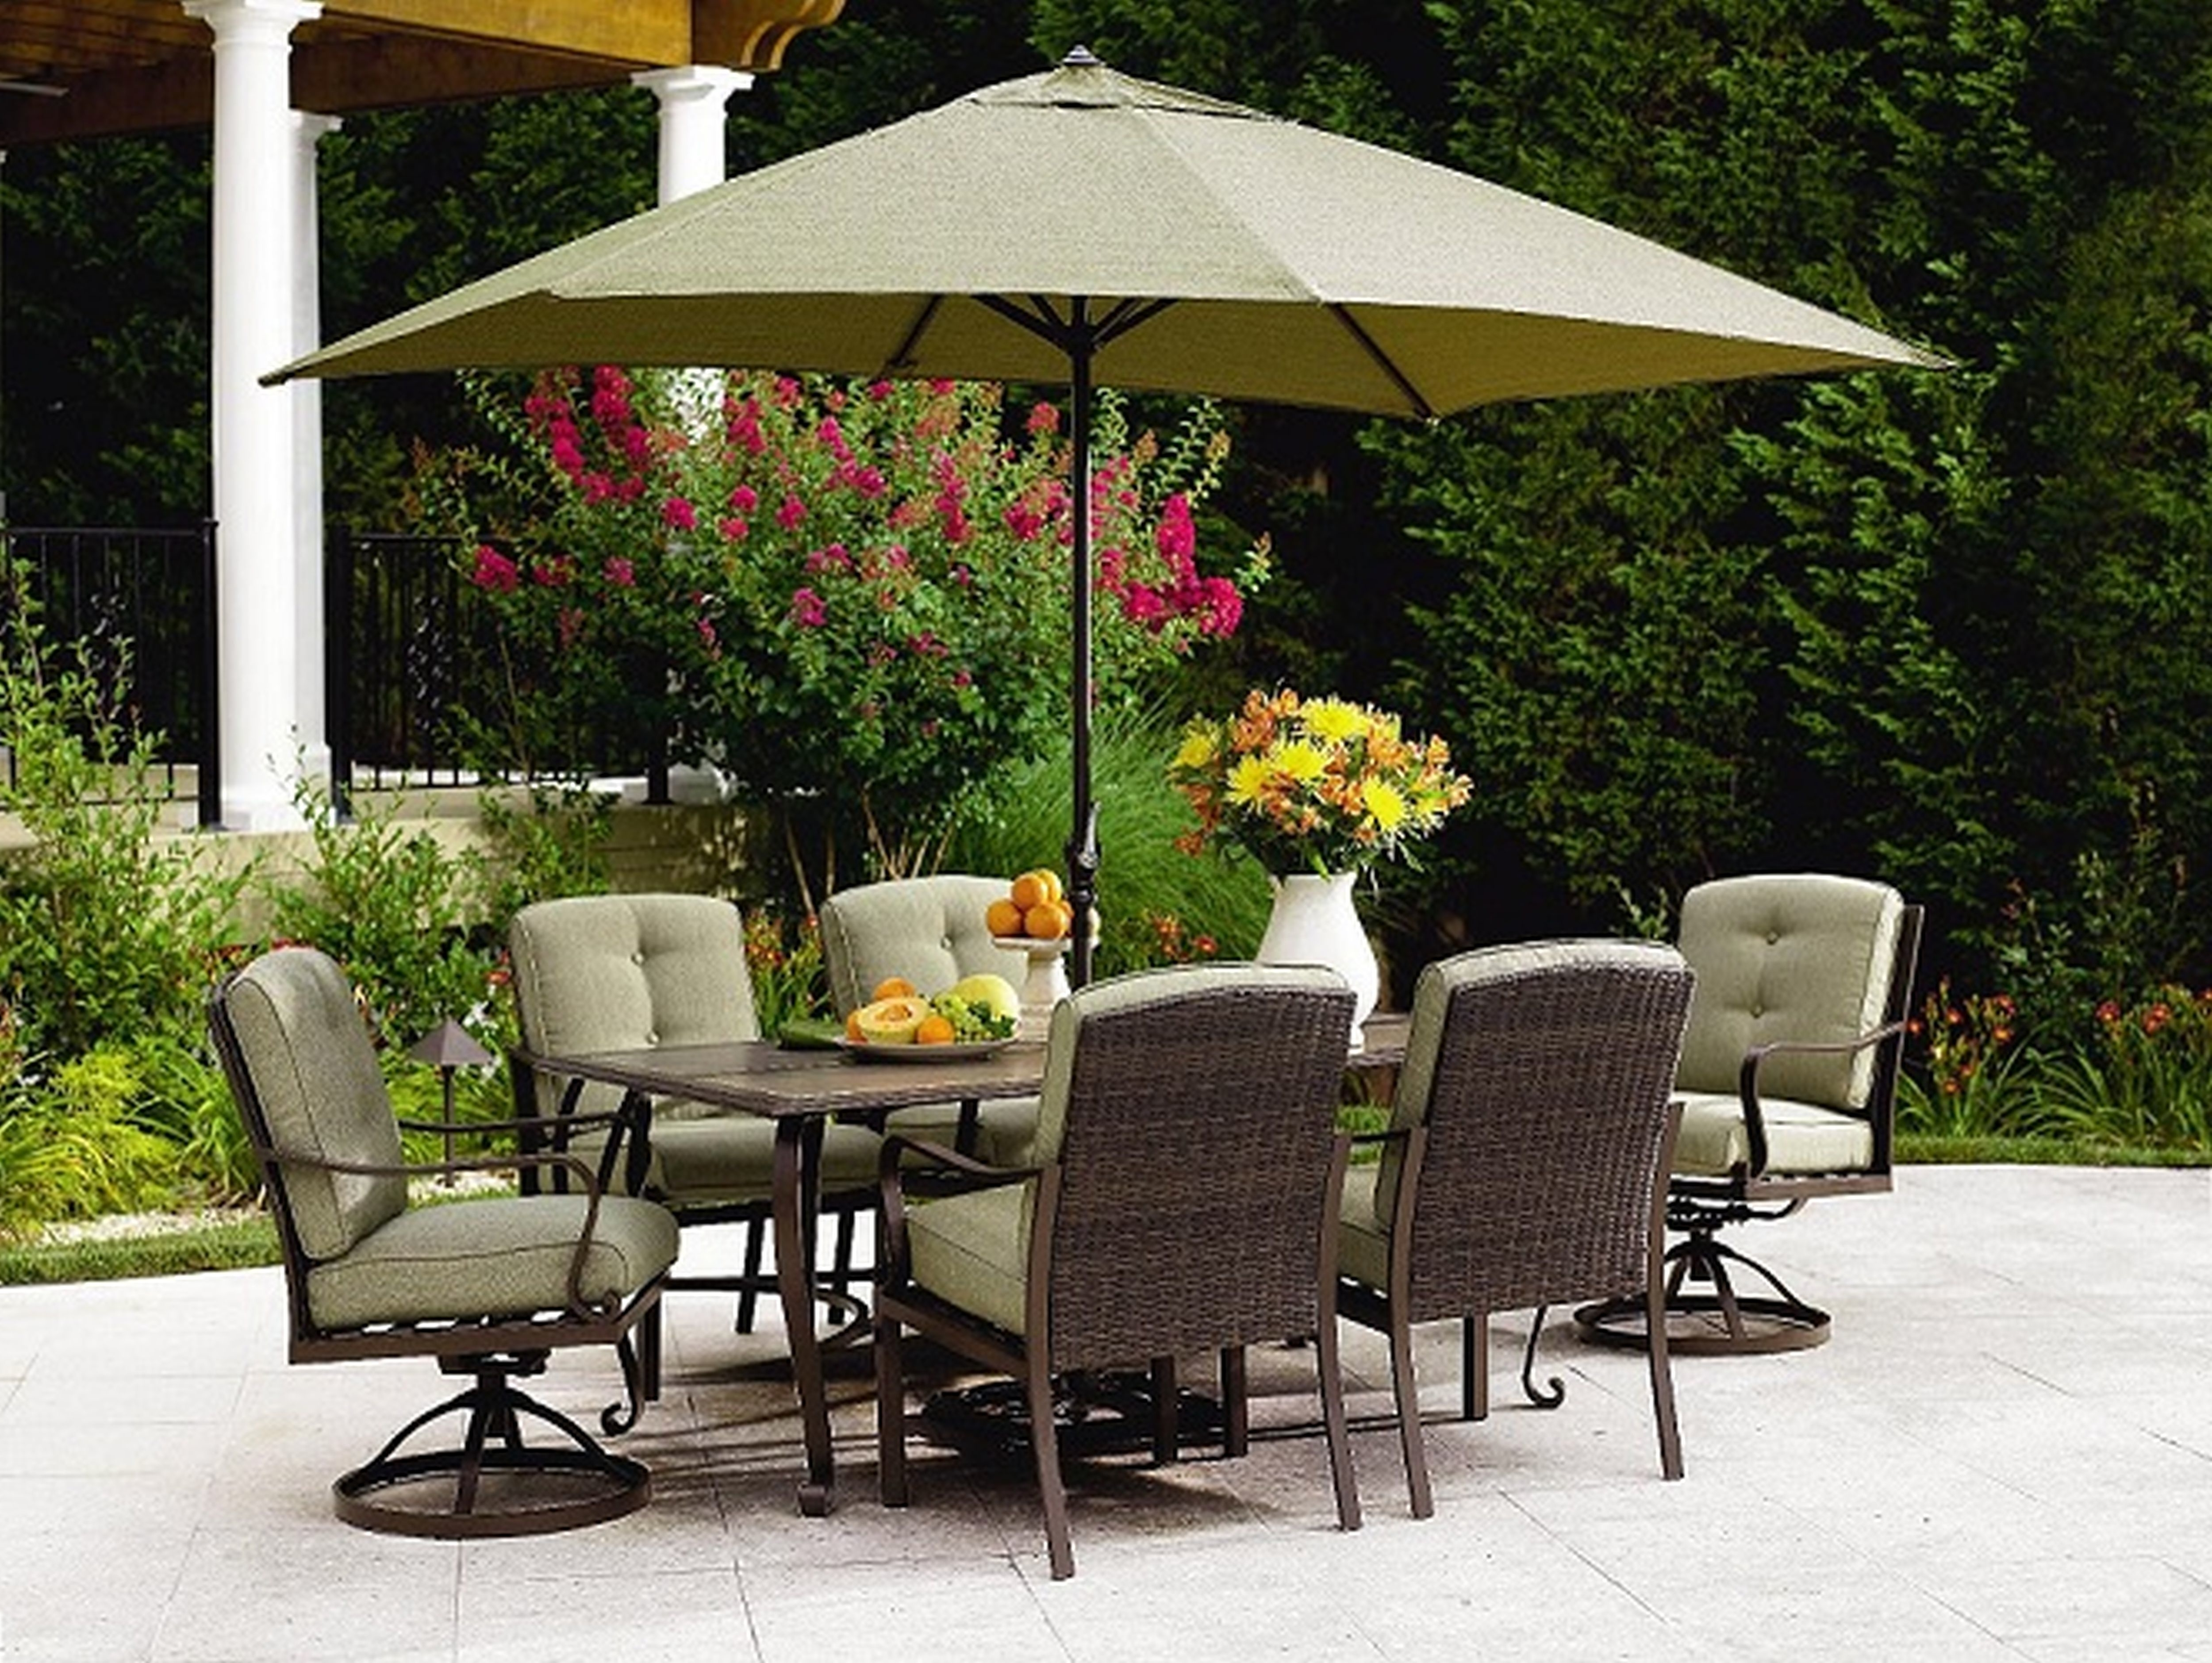 Popular 38 Small Patio Table With Umbrella, Furniture: Patio Chairs That Throughout Patio Furniture With Umbrellas (View 17 of 20)